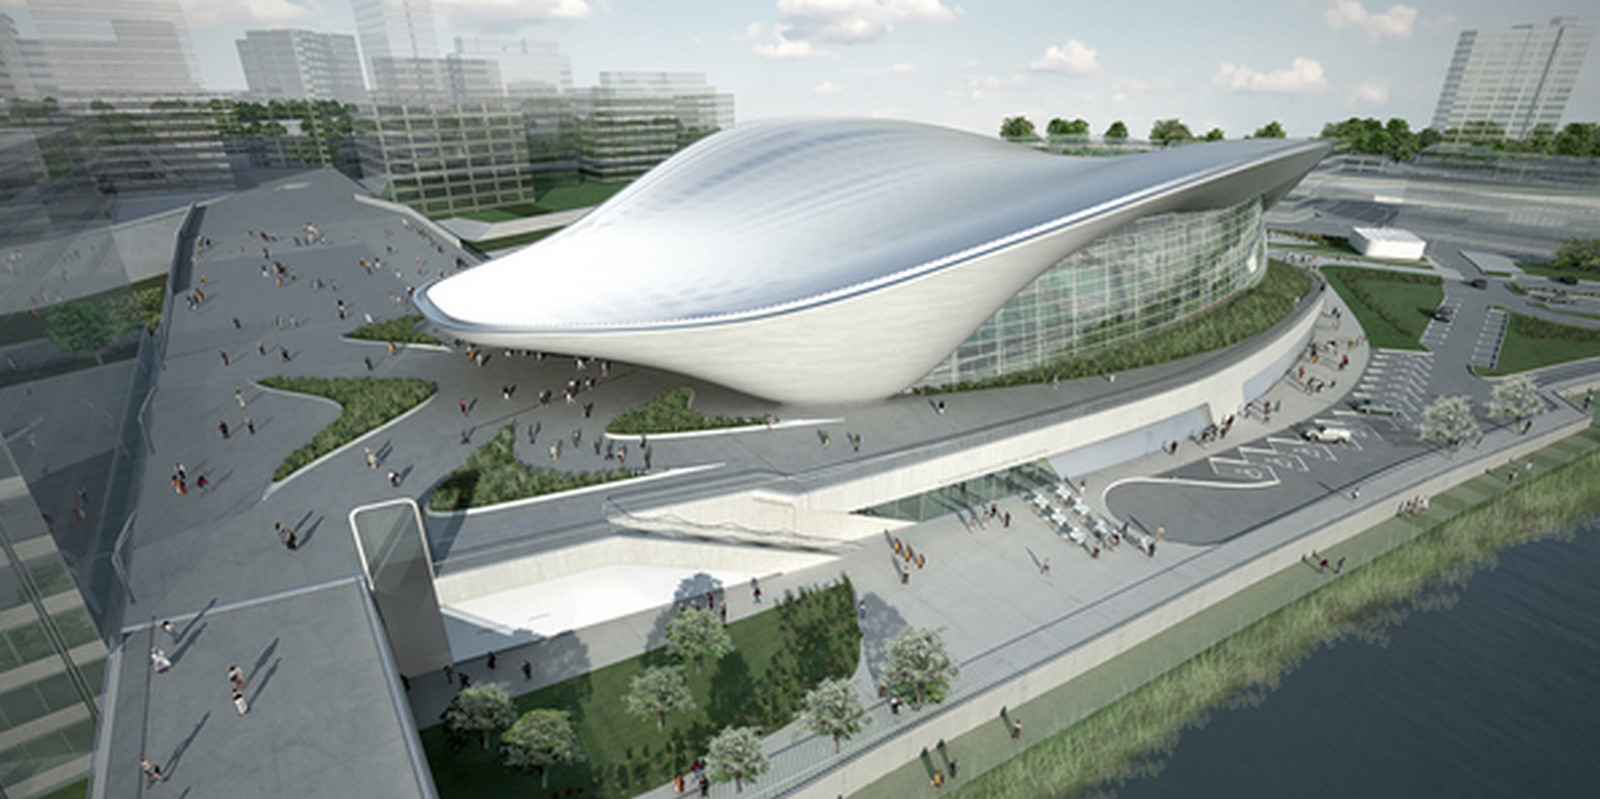 London Aquatics Centre by Zaha Hadid Architects- Architecture inspired by water - Sheet8